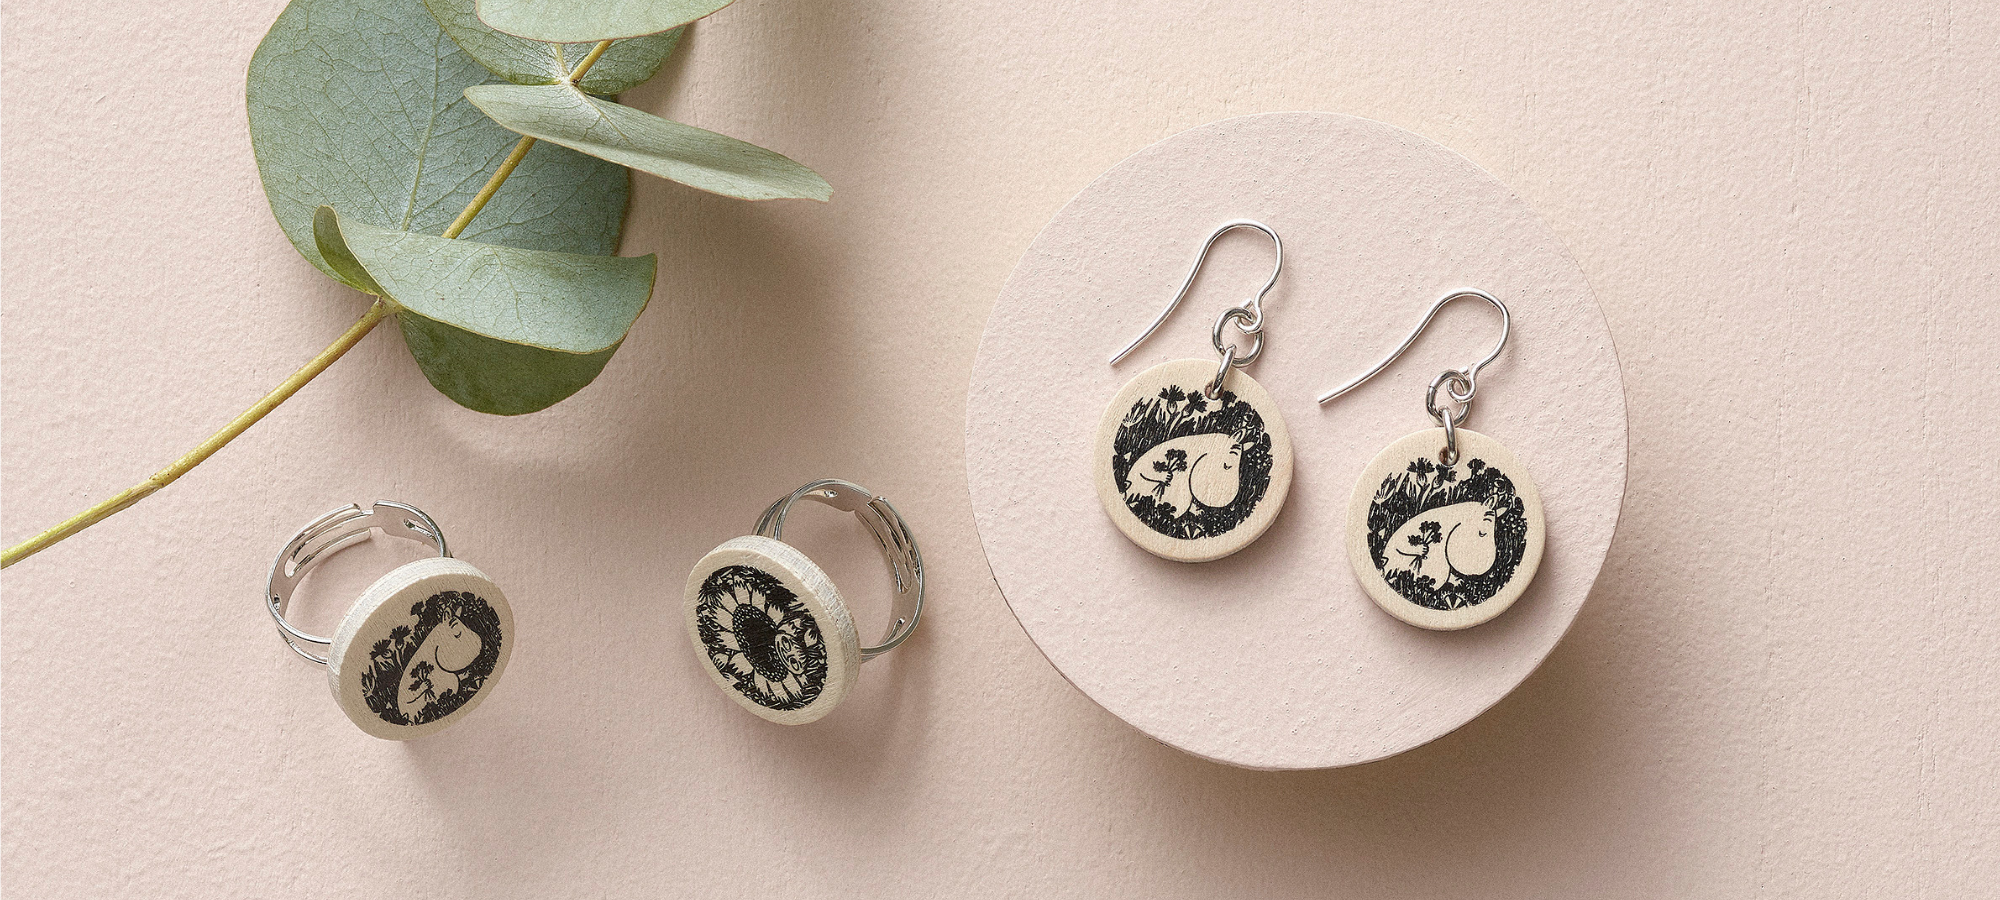 aarikka moomin earrings jewelry inspiration